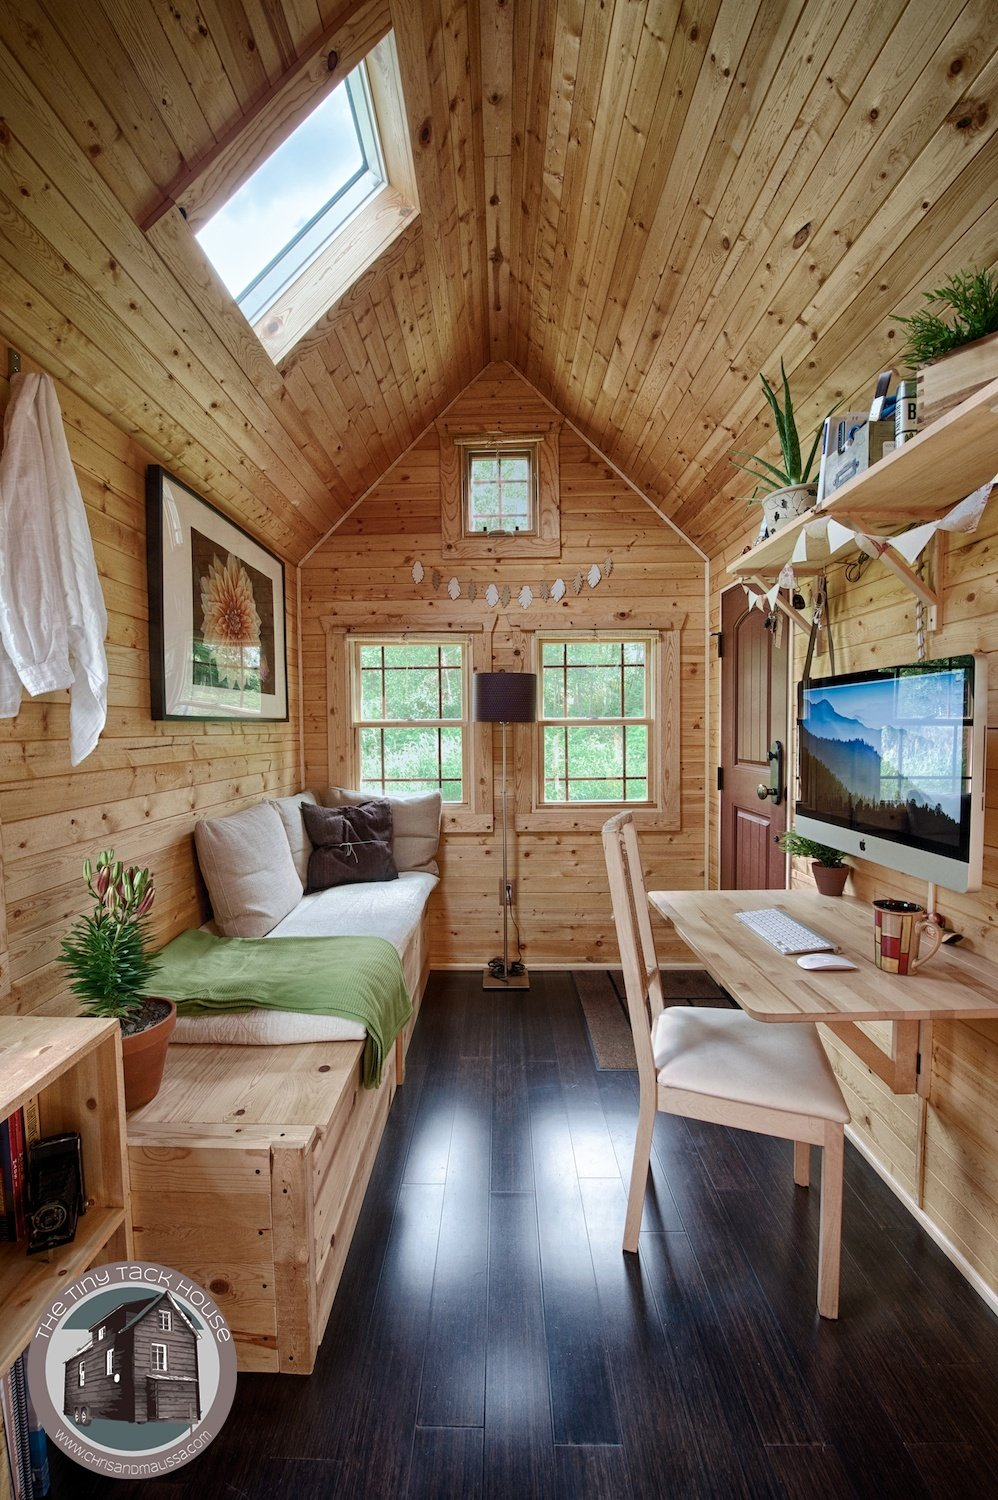 Tiny Home Interior Interesting 16 Tiny Houses You Wish You Could Live In